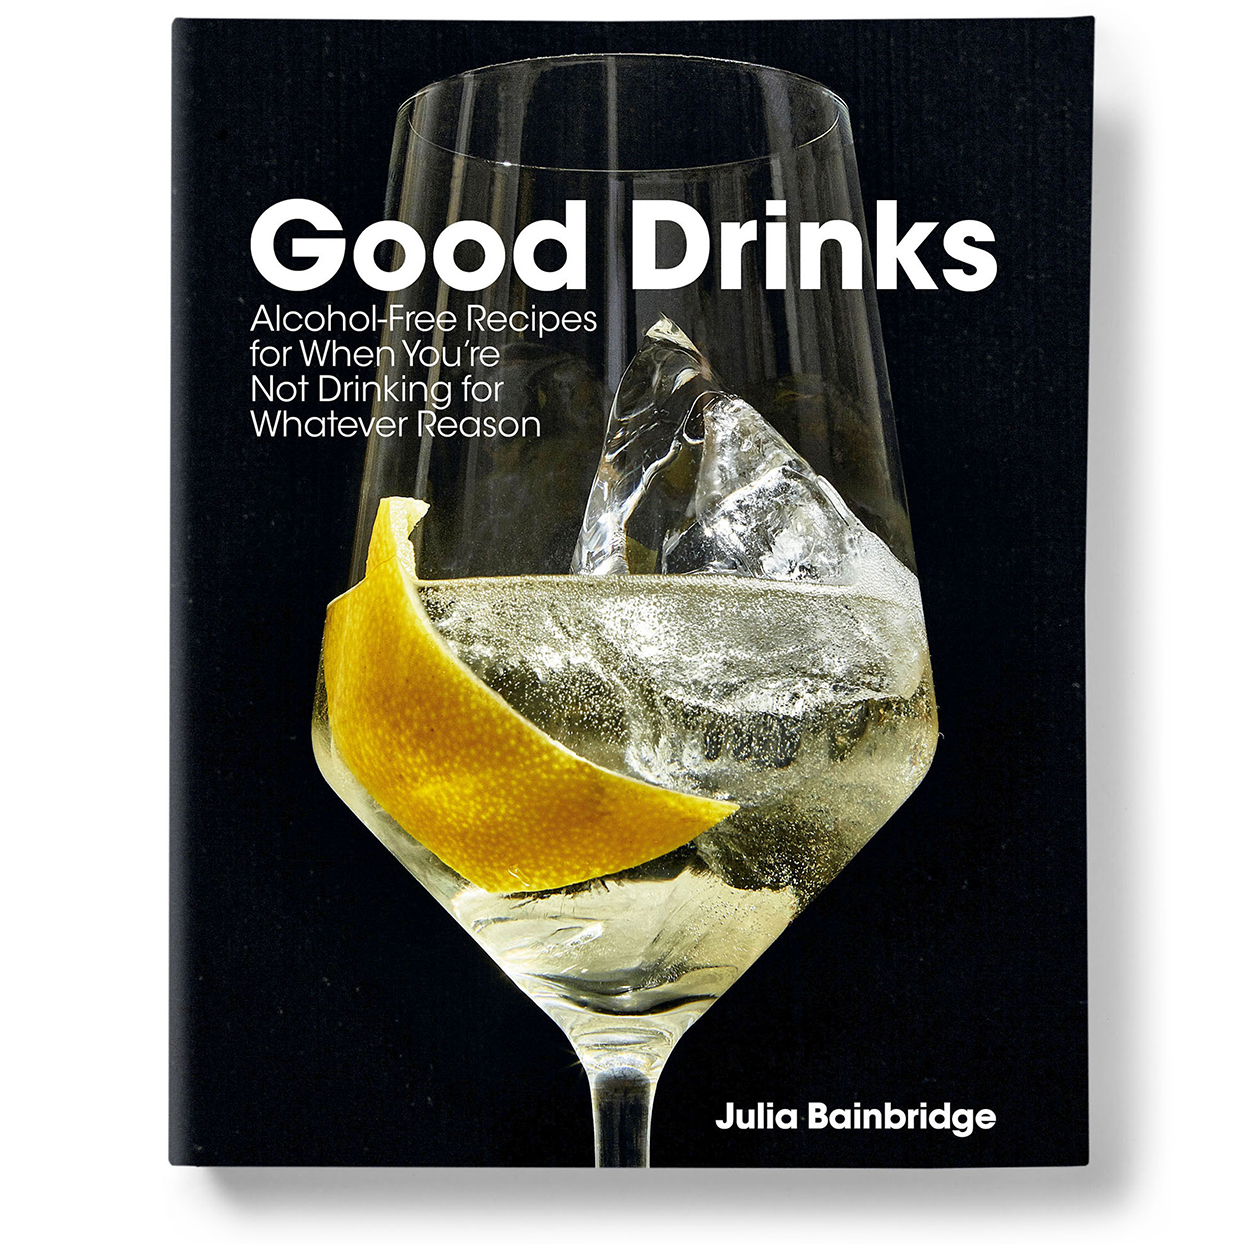 Good Drinks: Alcohol-Free Recipes for When You're Not Drinking for Whatever Reason by Julia Bainbridge book cover